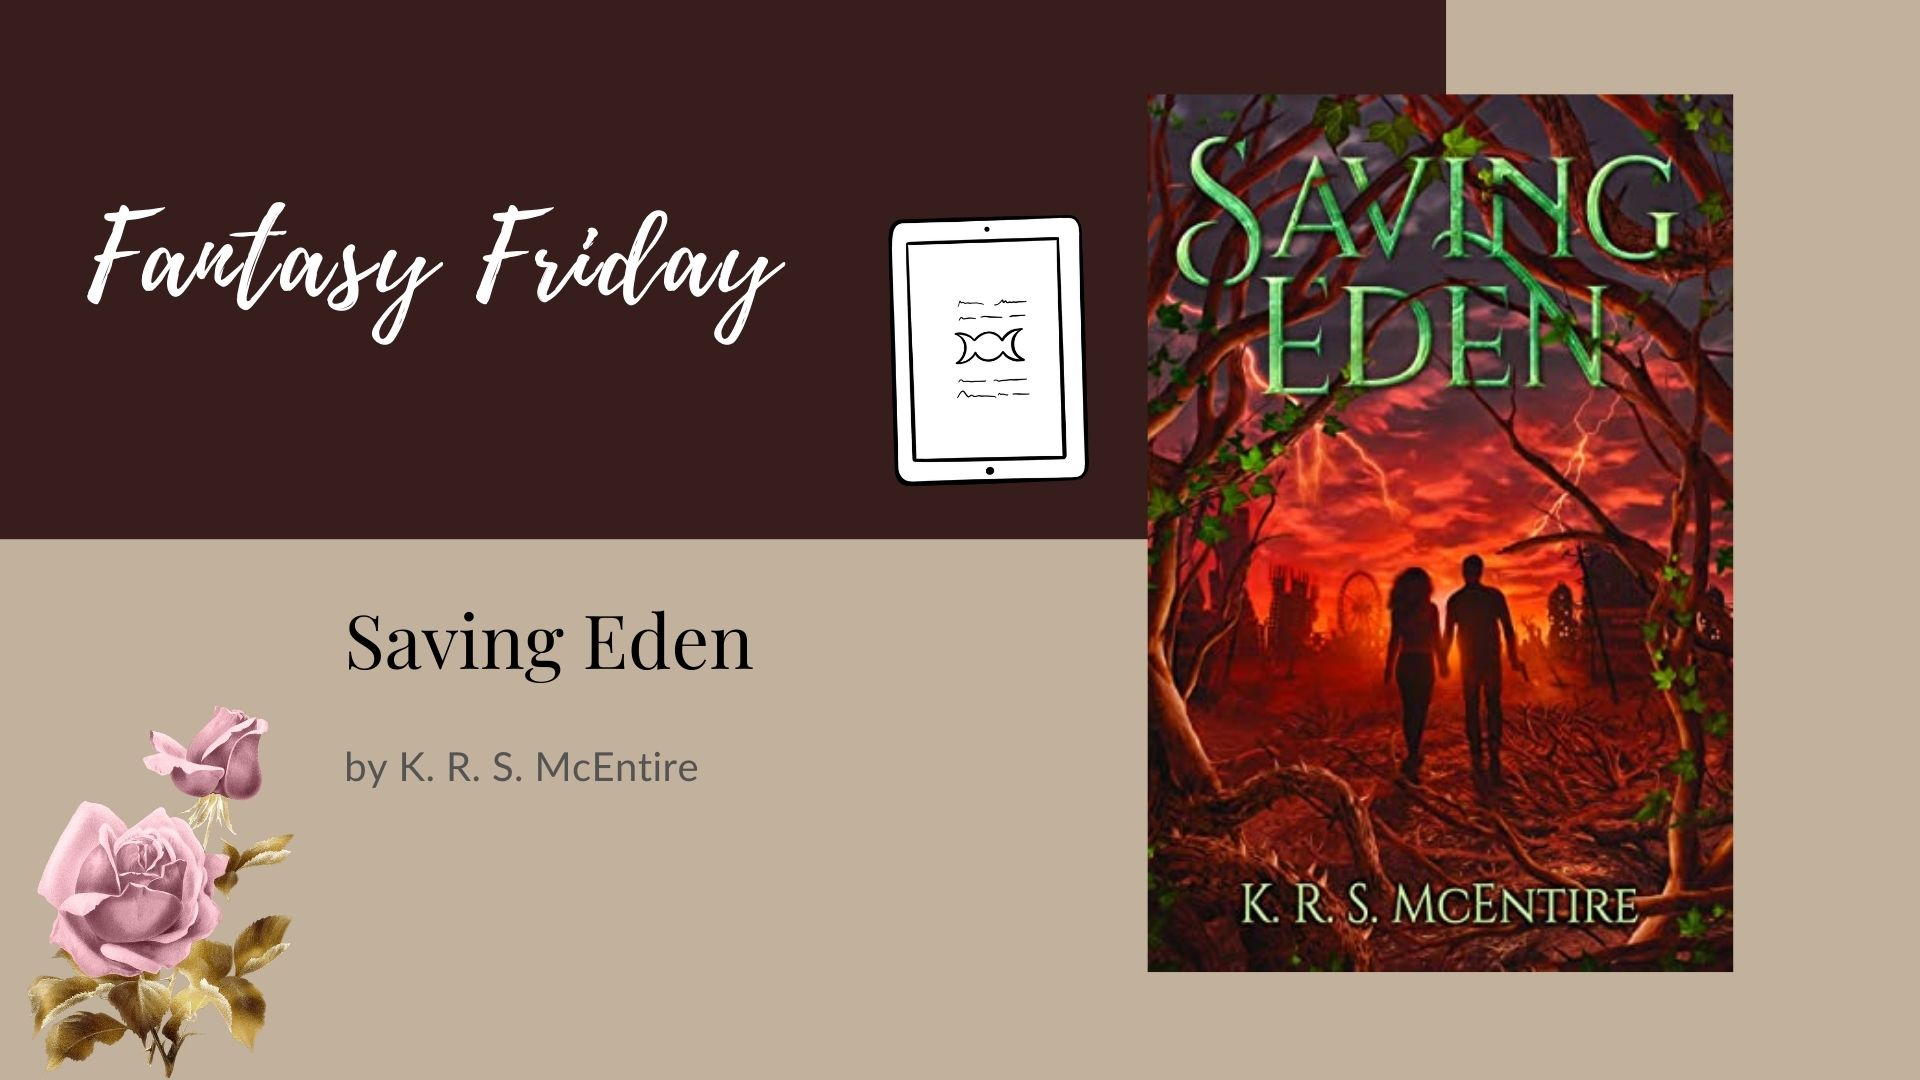 You are currently viewing Fantasy Friday: Saving Eden by K. R. S. McEntire